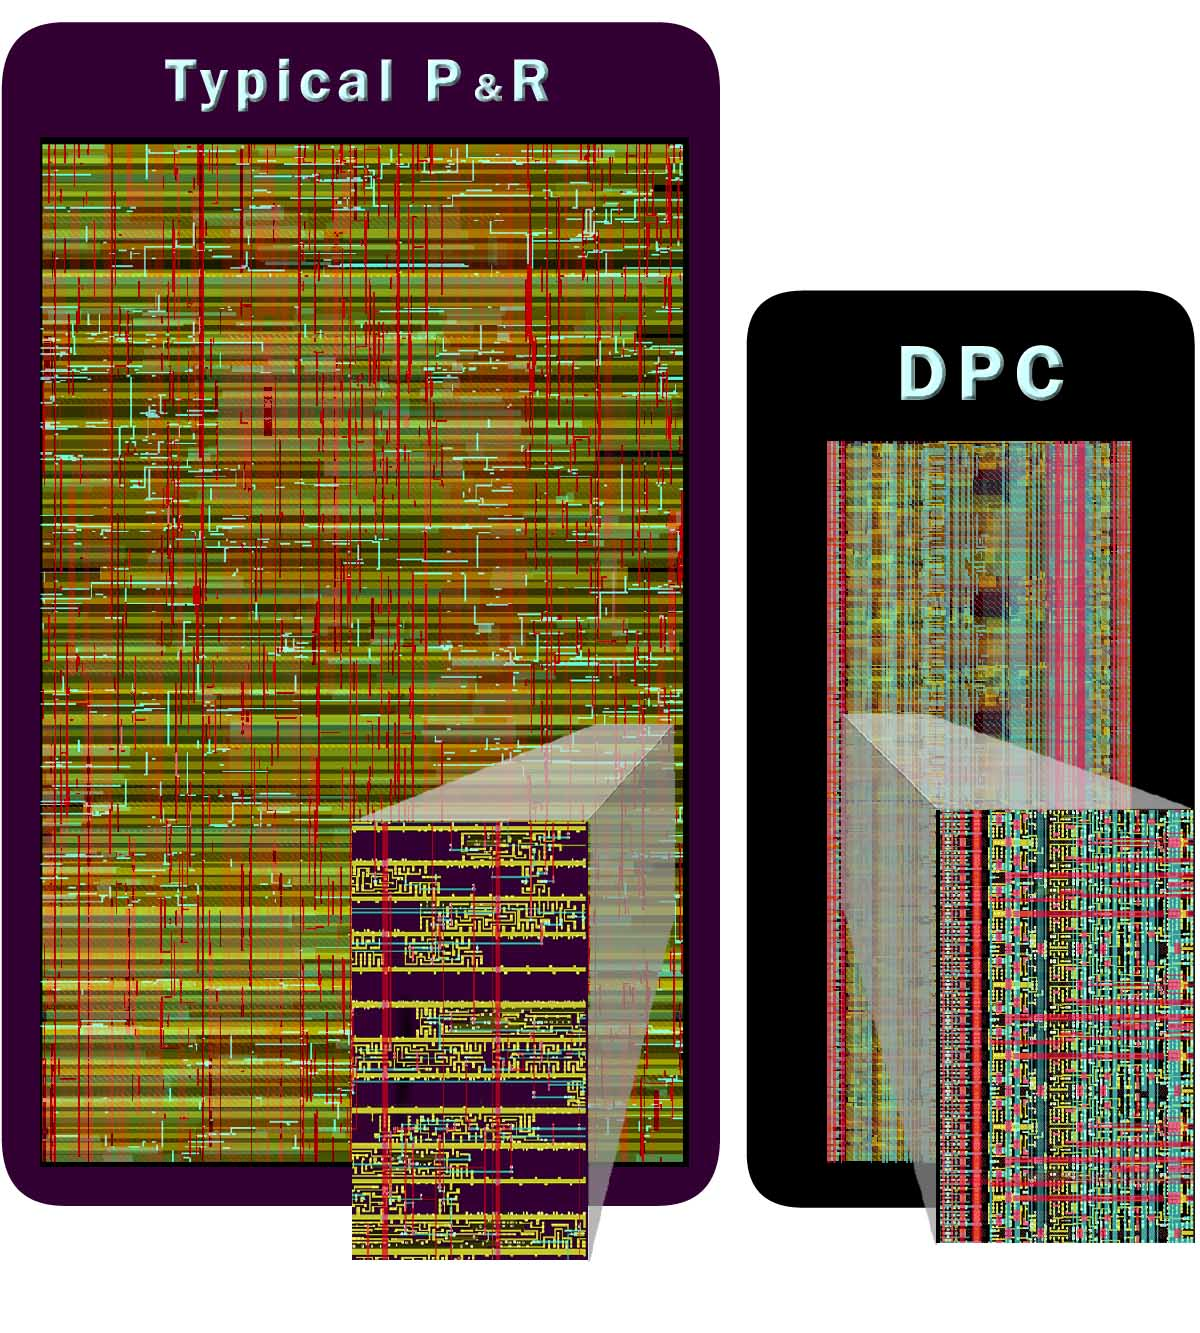 DPC side-by-side results